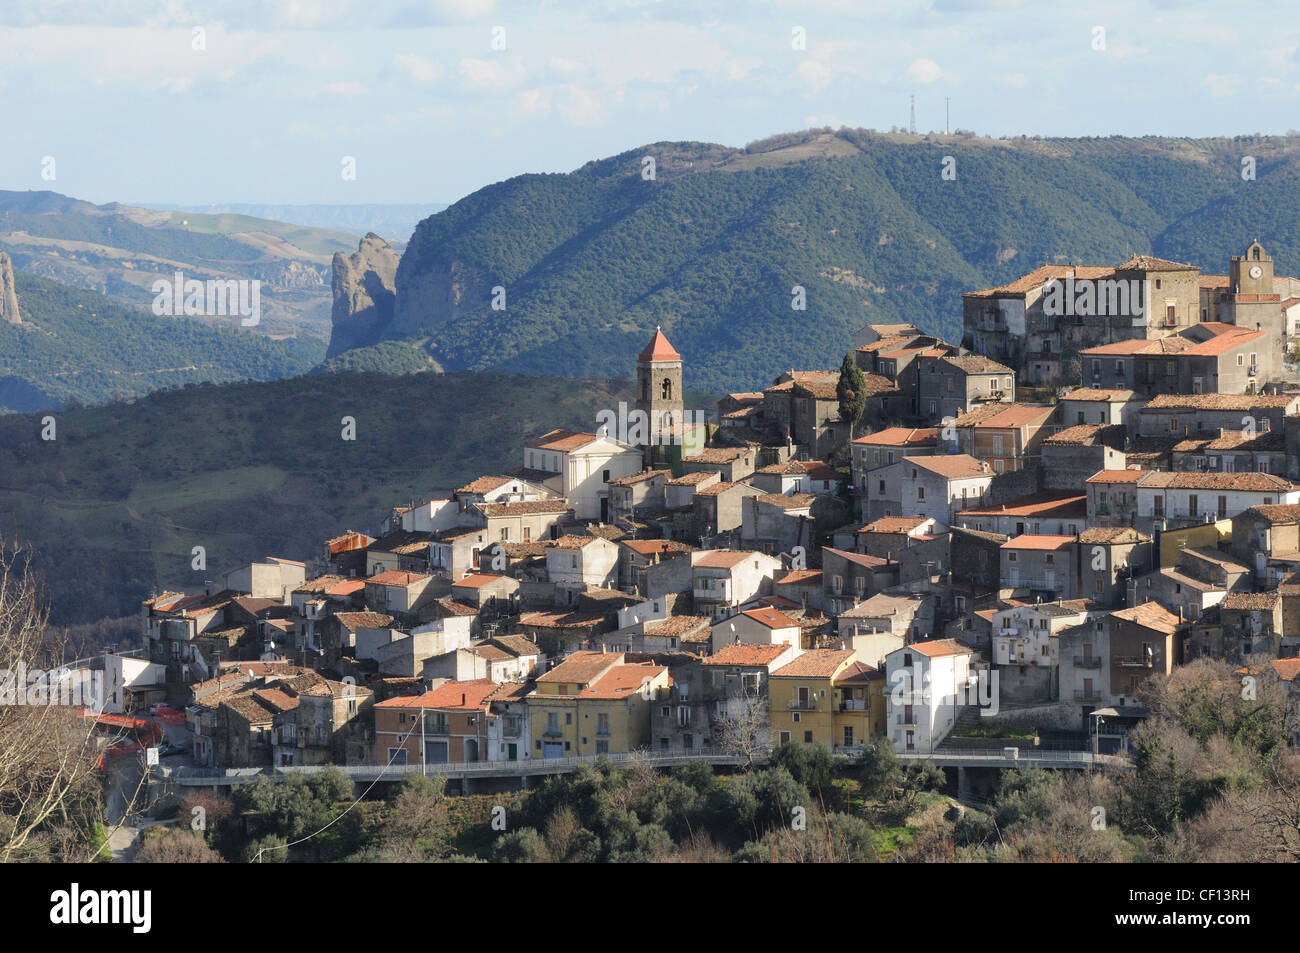 Landscape On The Mountain Village Of San Martino D Agri And The